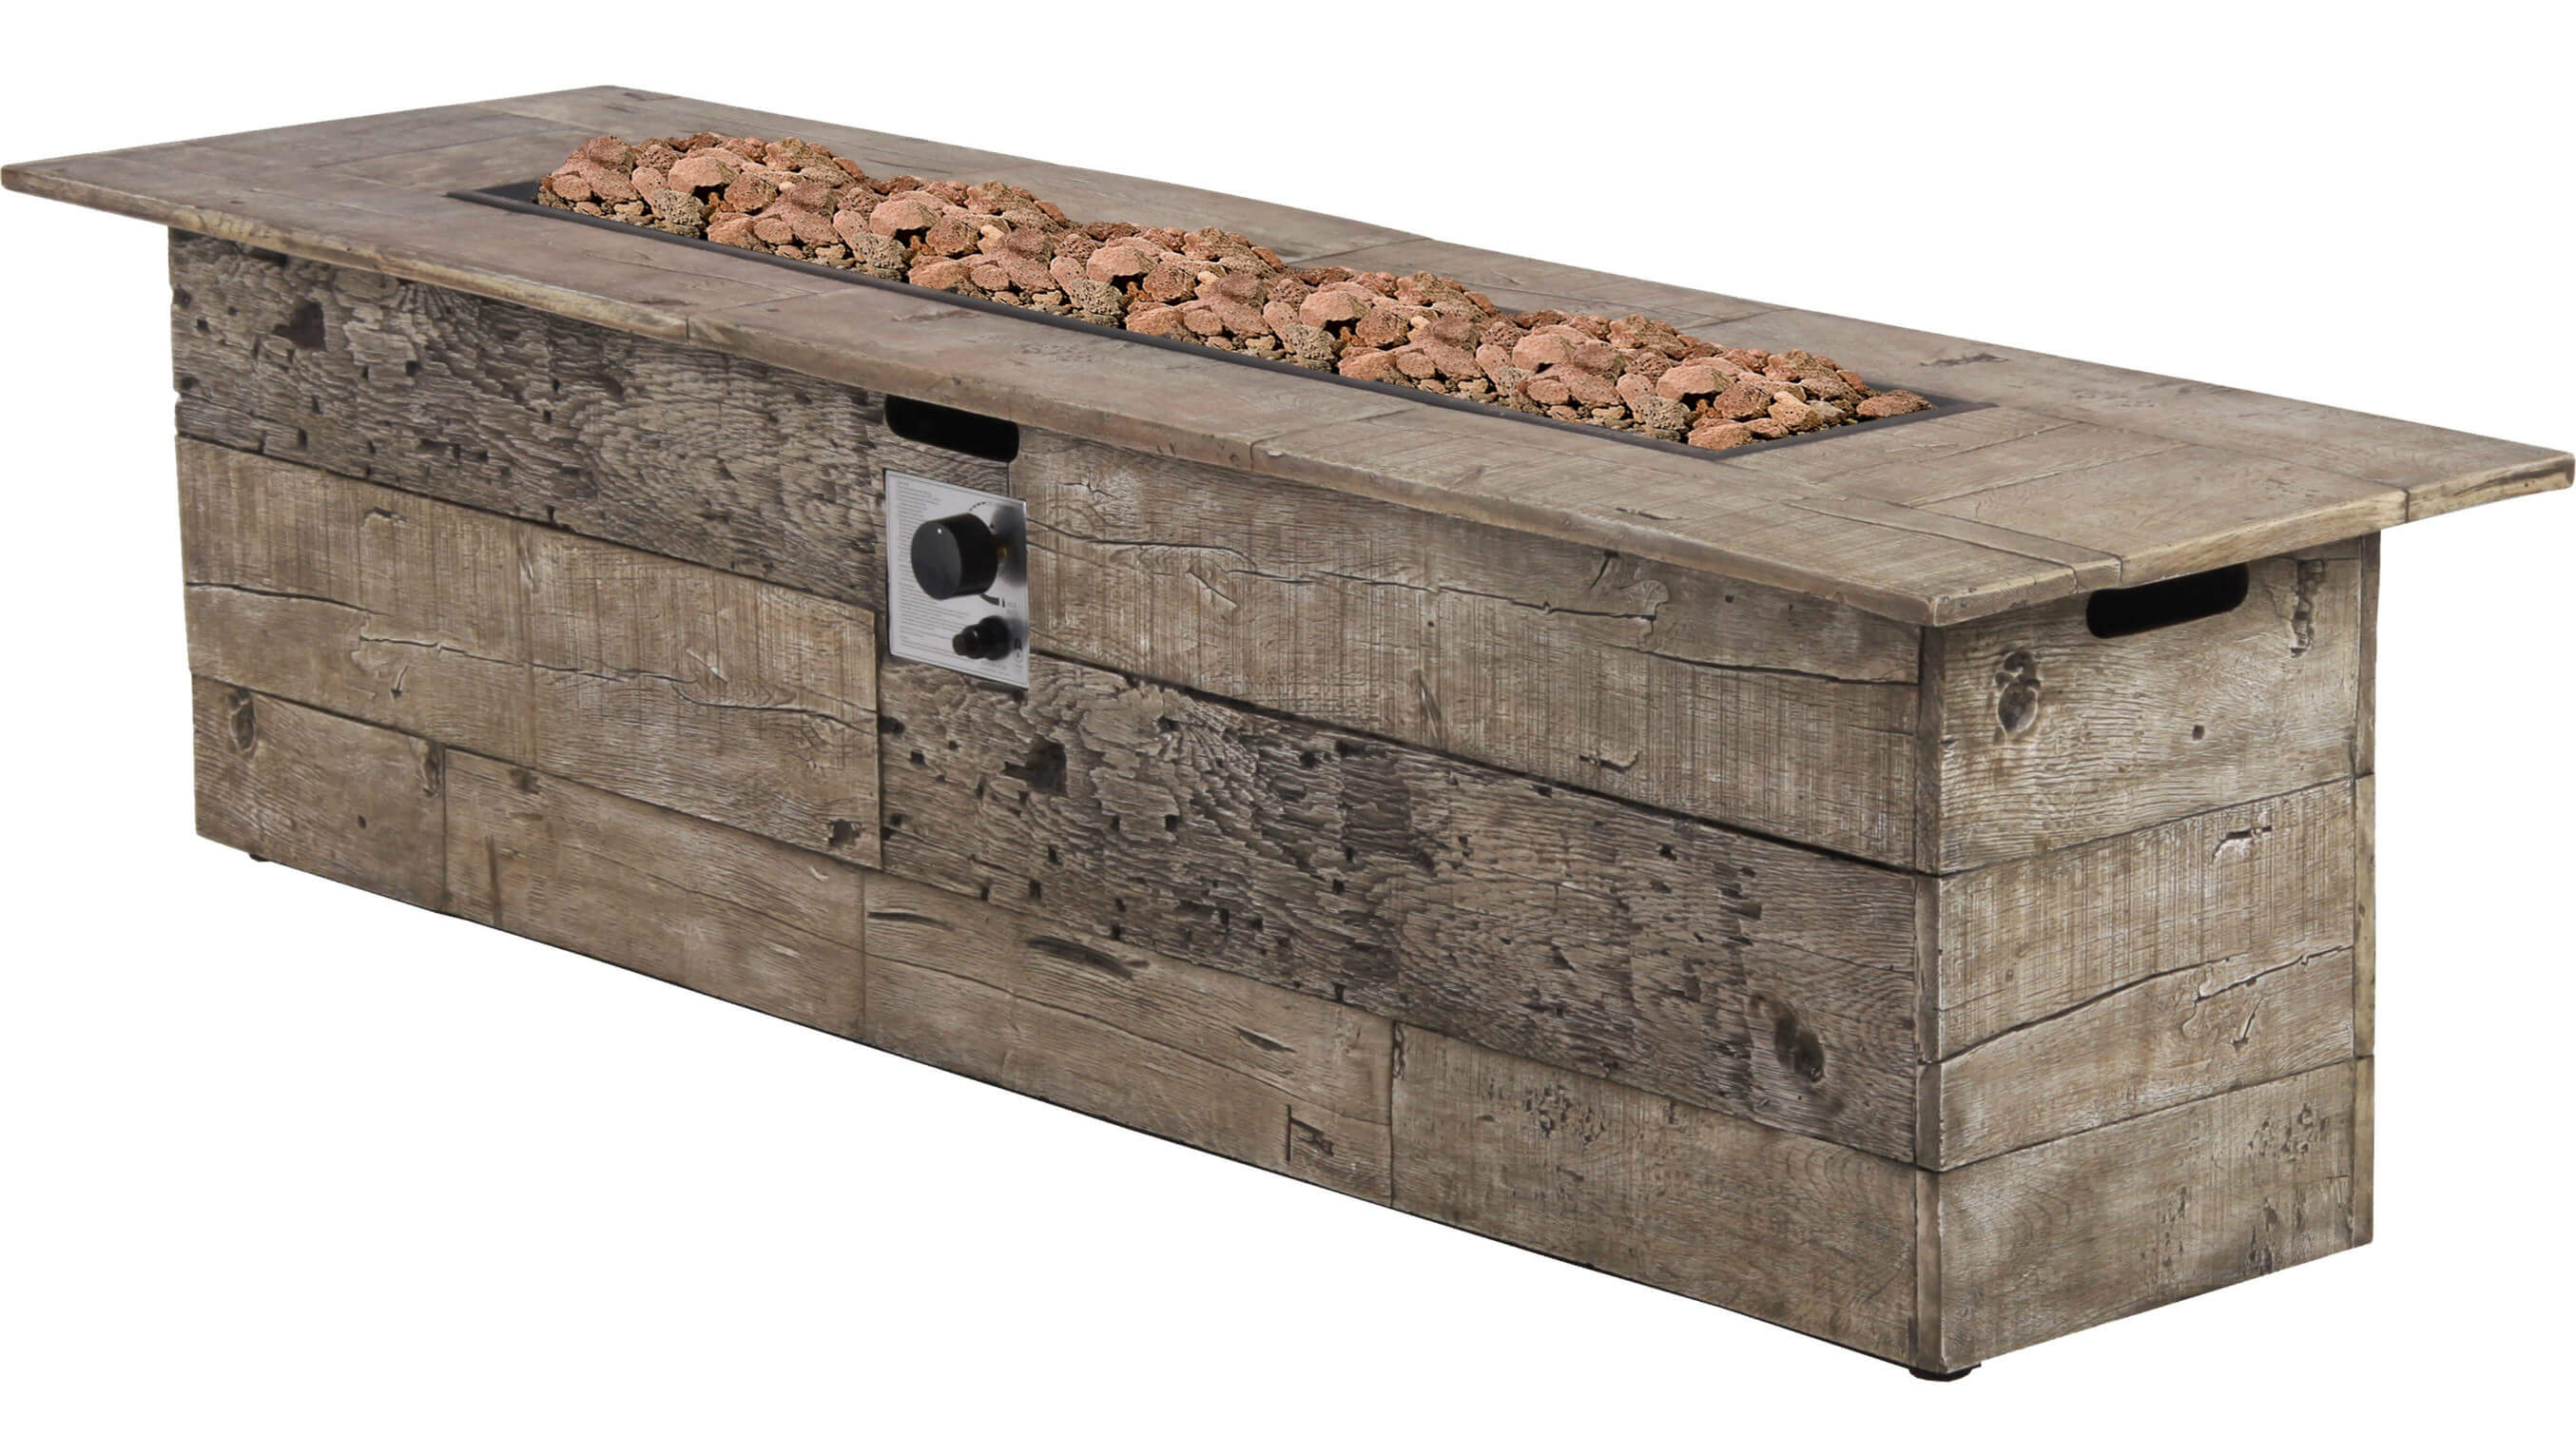 Want a fire pit that looks like a normal pile of wood at first glance? Why not get this beautiful rectangular propane fire pit? It has a natural wood finish and its burner is made out of stainless steel. It also is capable of producing heat up to 70,000 BTUs and comes with its very own cover for weather resistance.